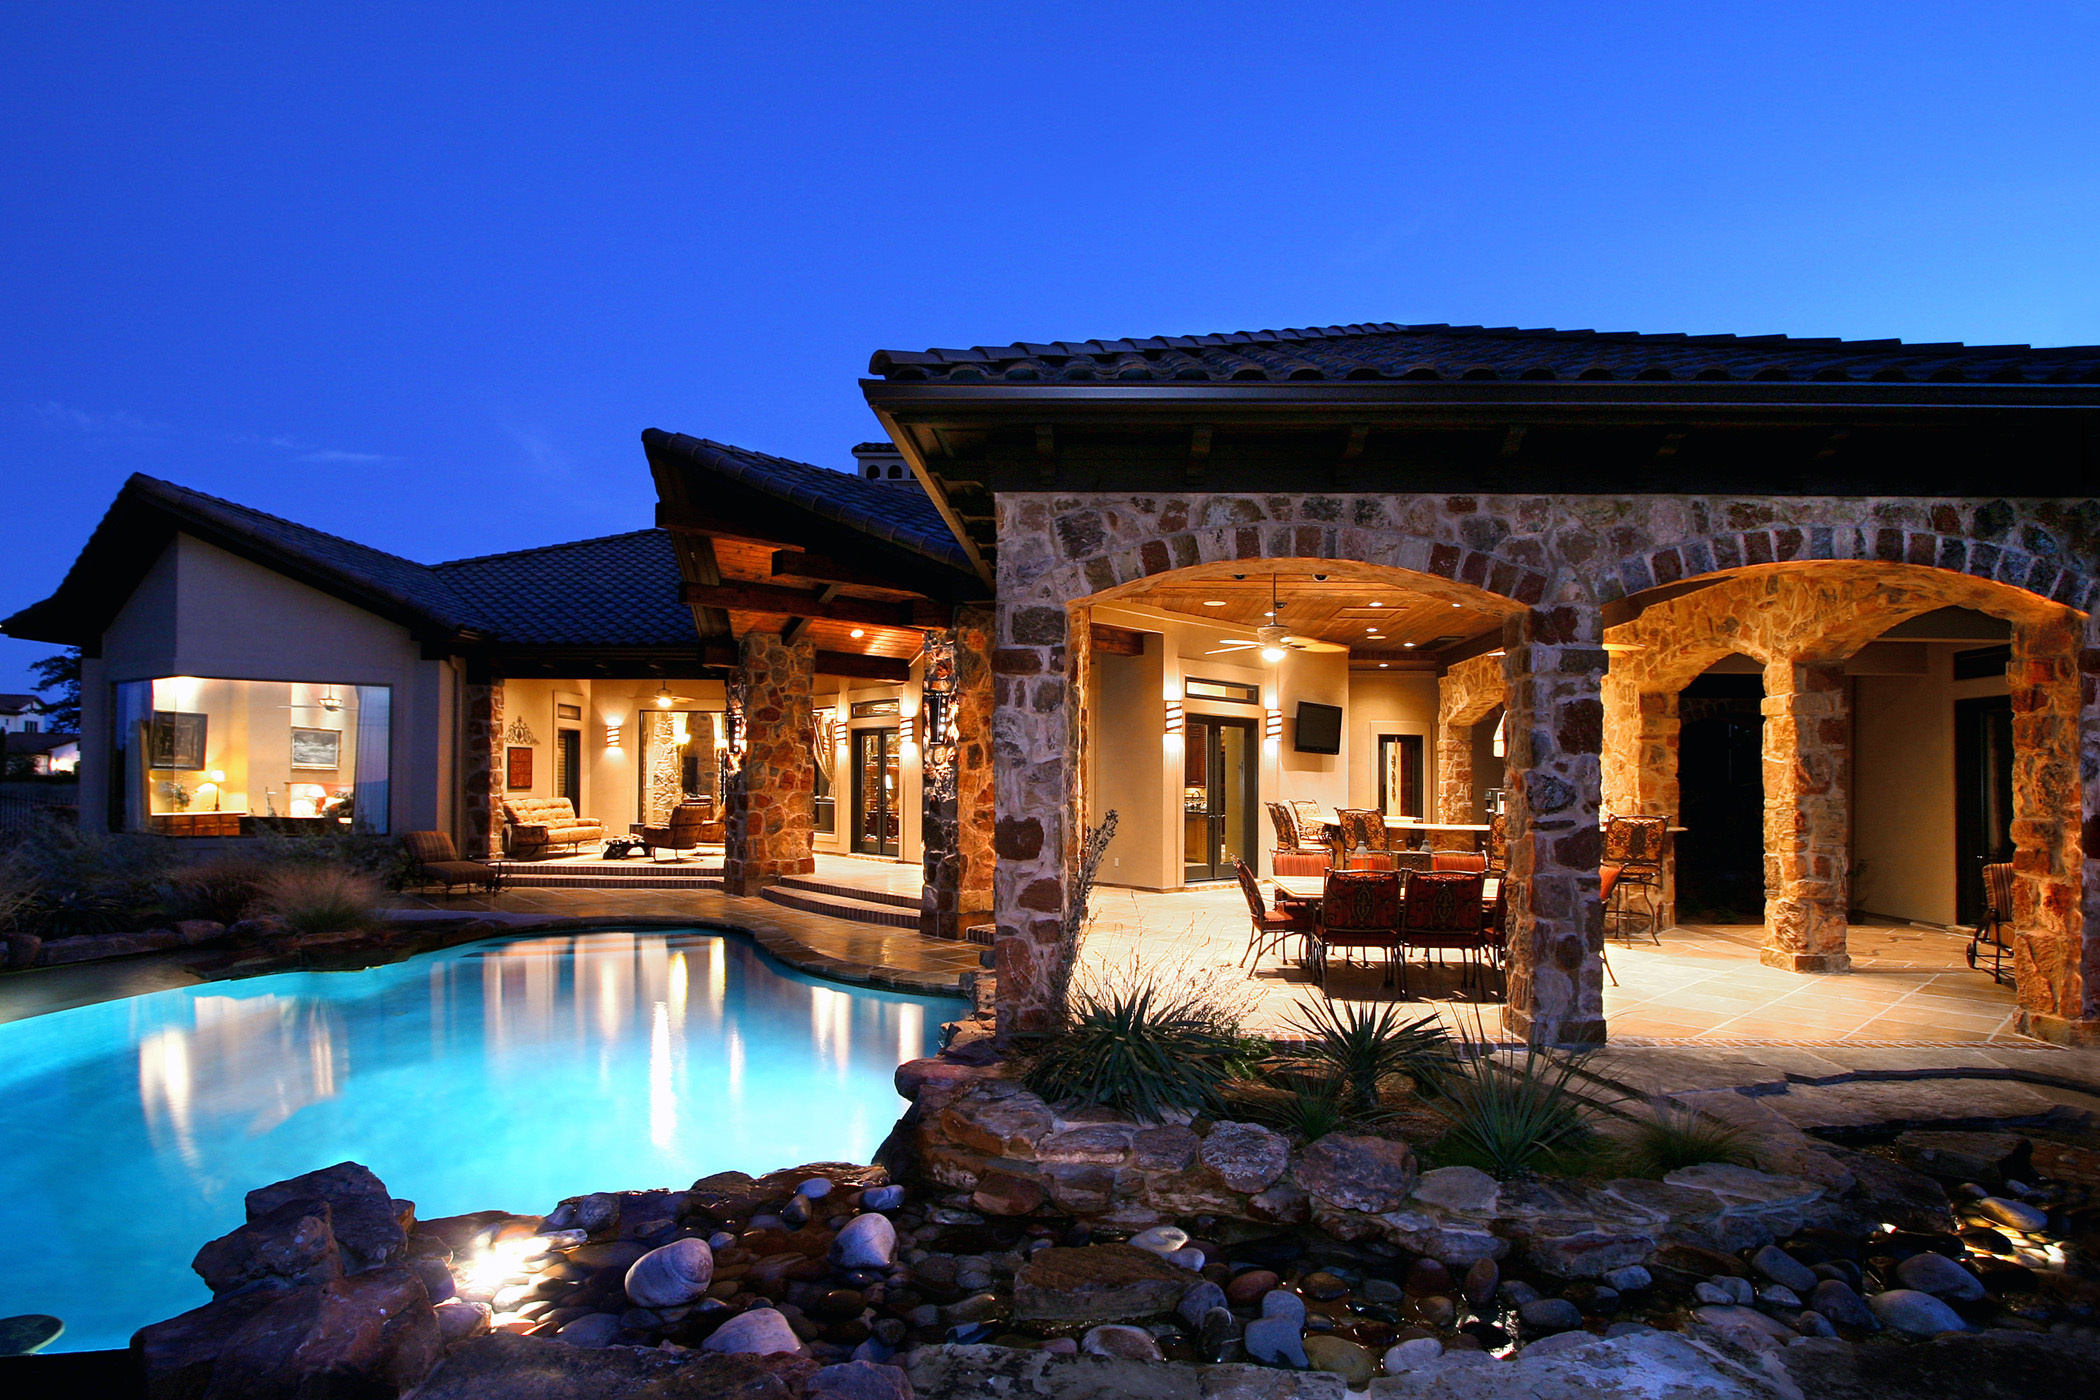 Stone Pool Home House Interior Wallpaper 2100x1400 171754